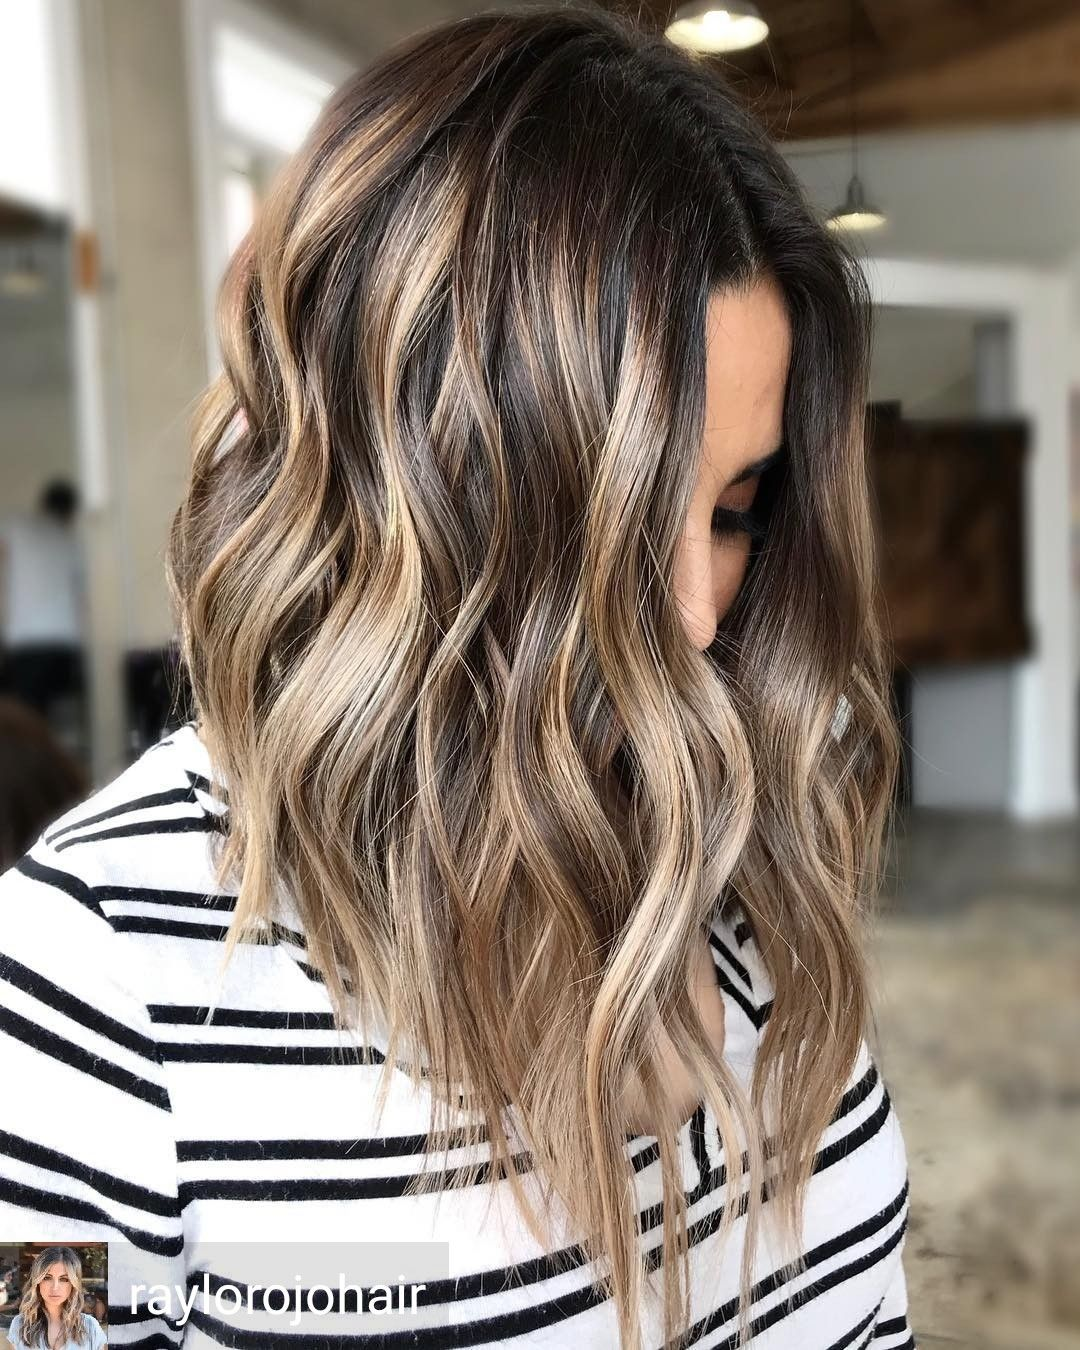 Color easy maintenance h a i r in pinterest cabello